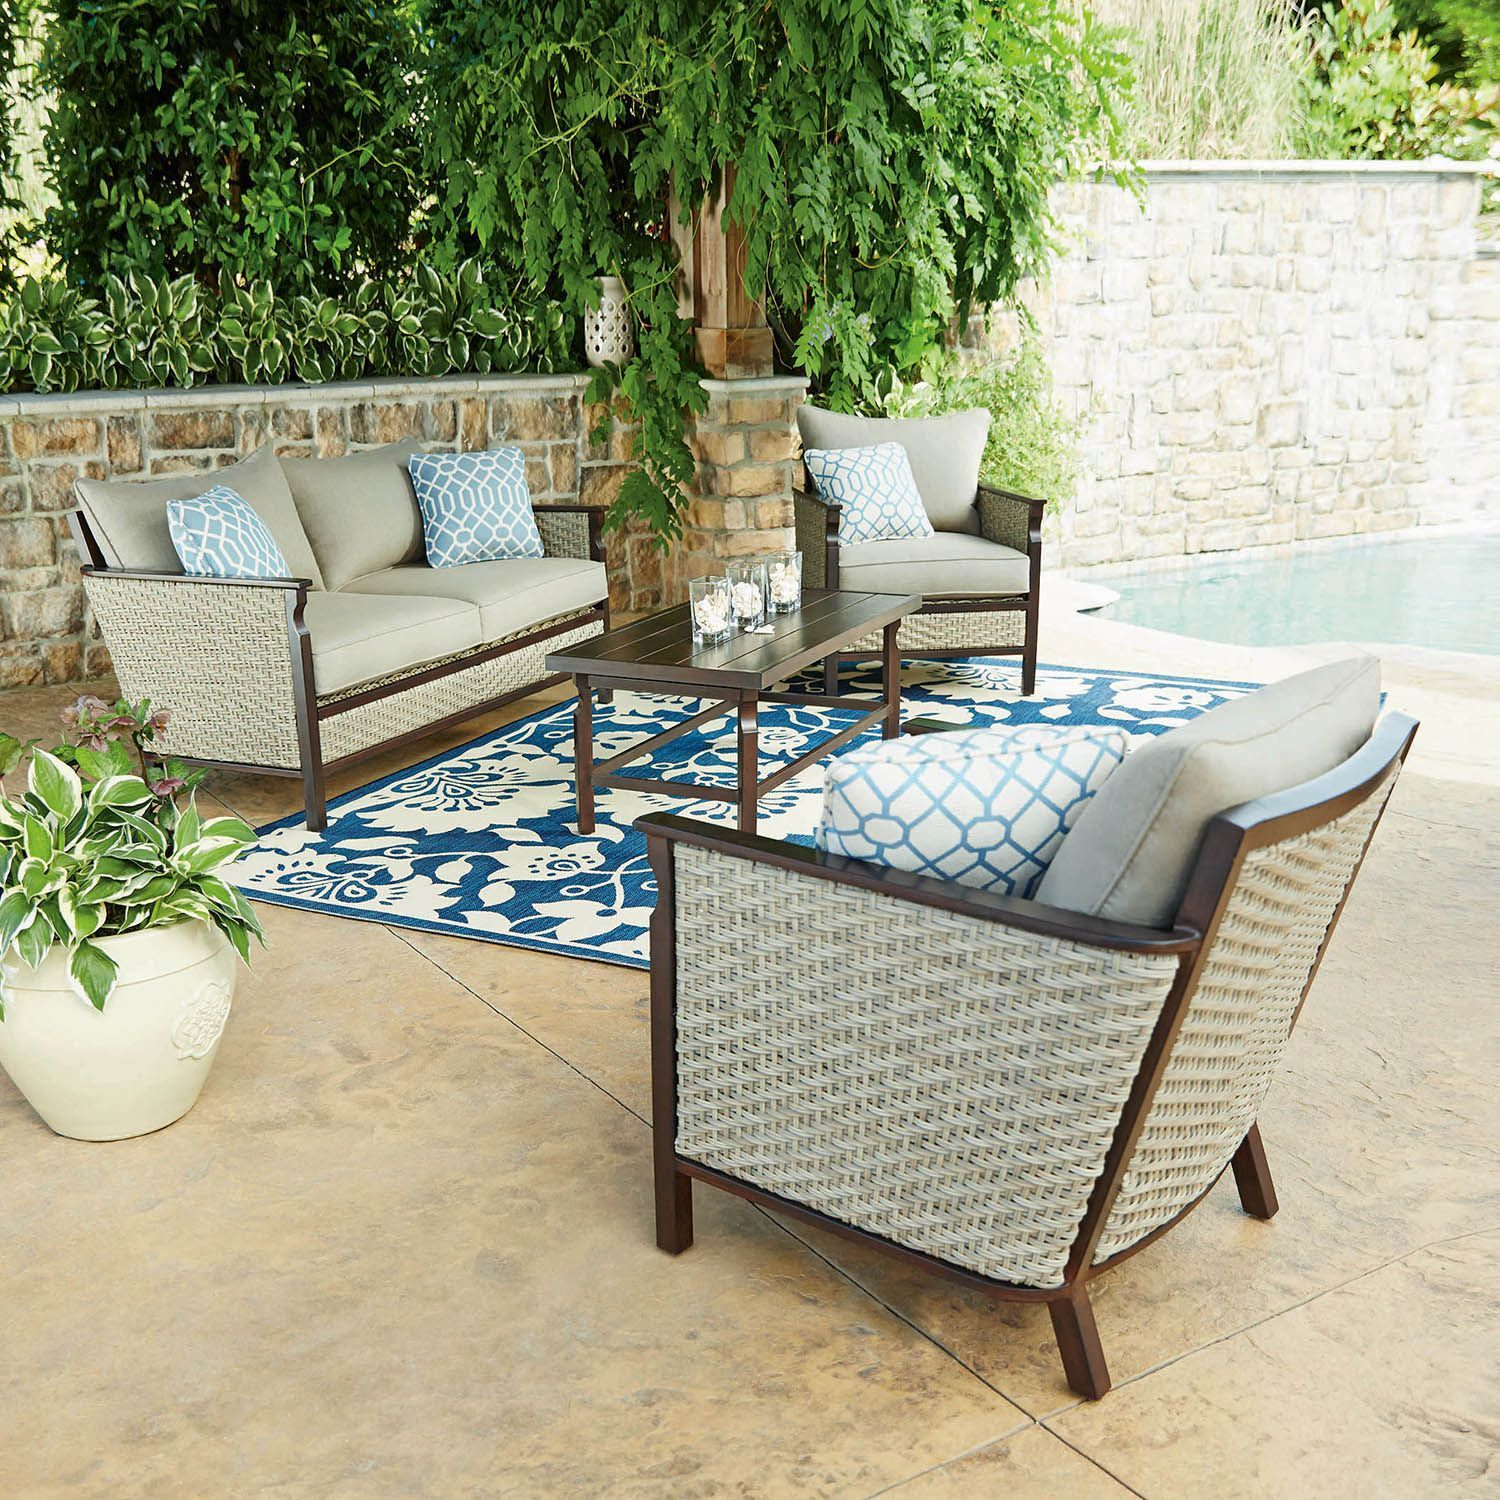 Buy Memberu0027s Mark Cole 4 Piece Seating Set : Patio Furniture With Sunbrella  At SamsClub